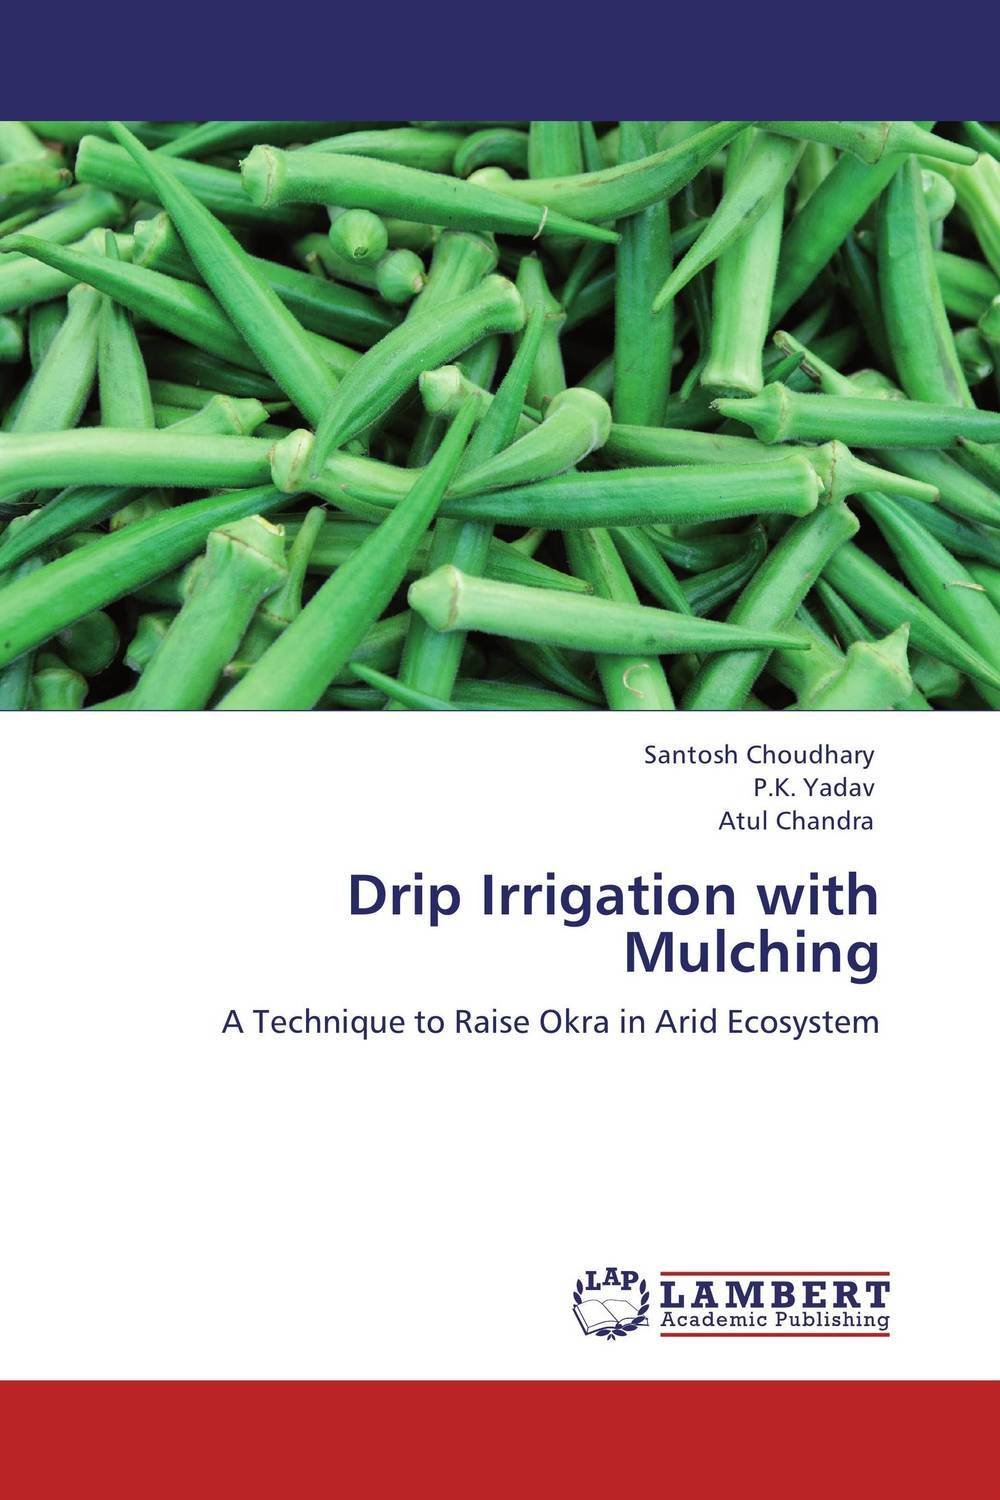 Drip Irrigation with Mulching farm level adoption of water system innovations in semi arid areas